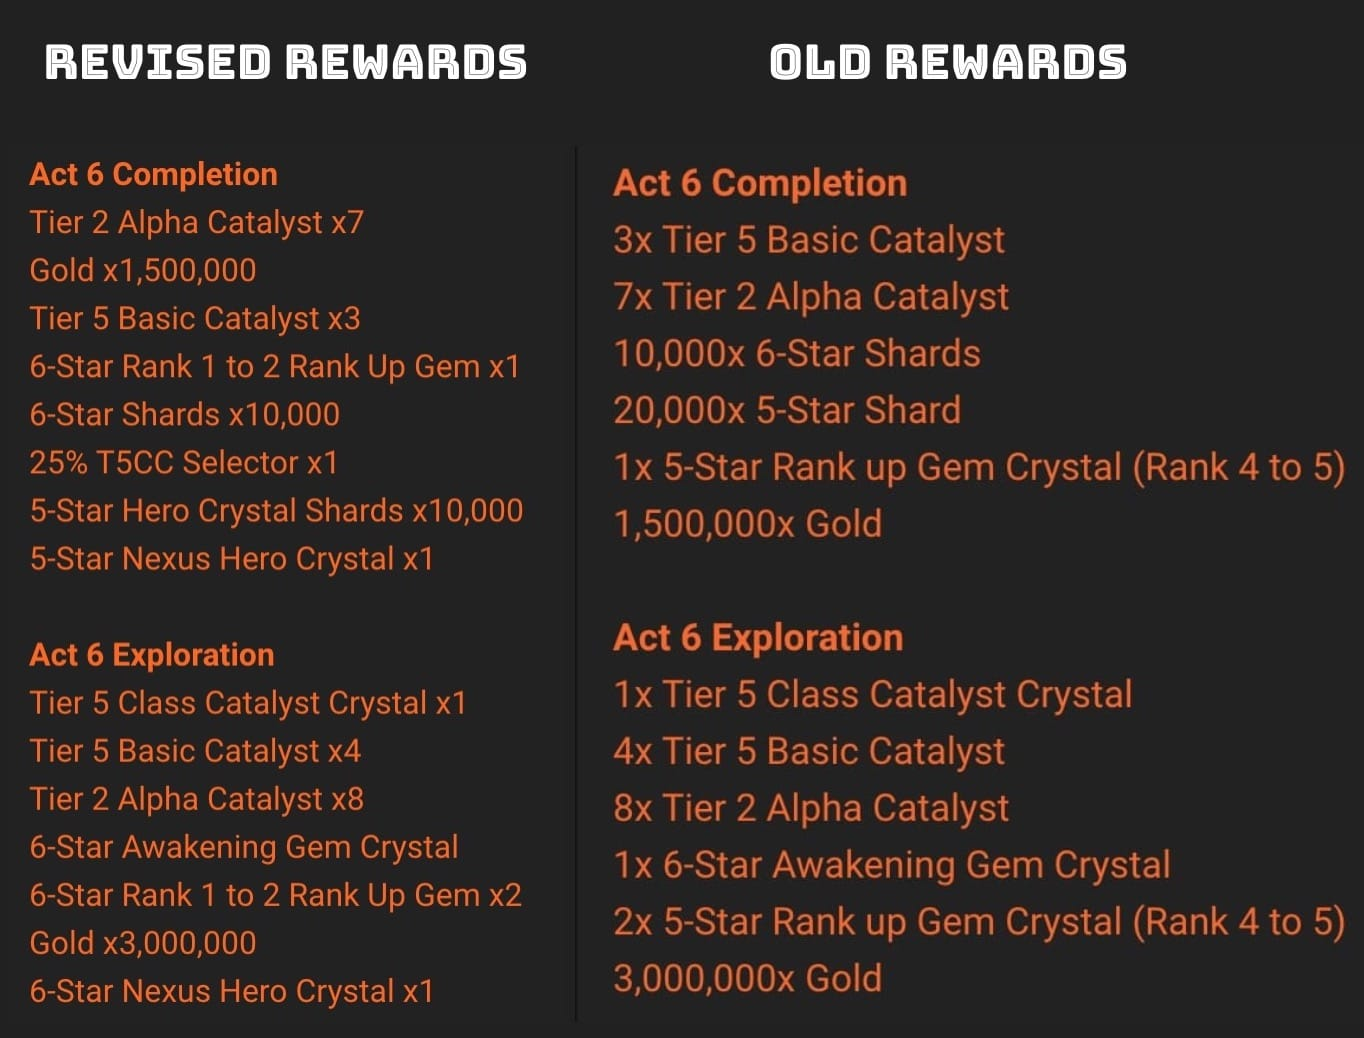 Updated Rewards